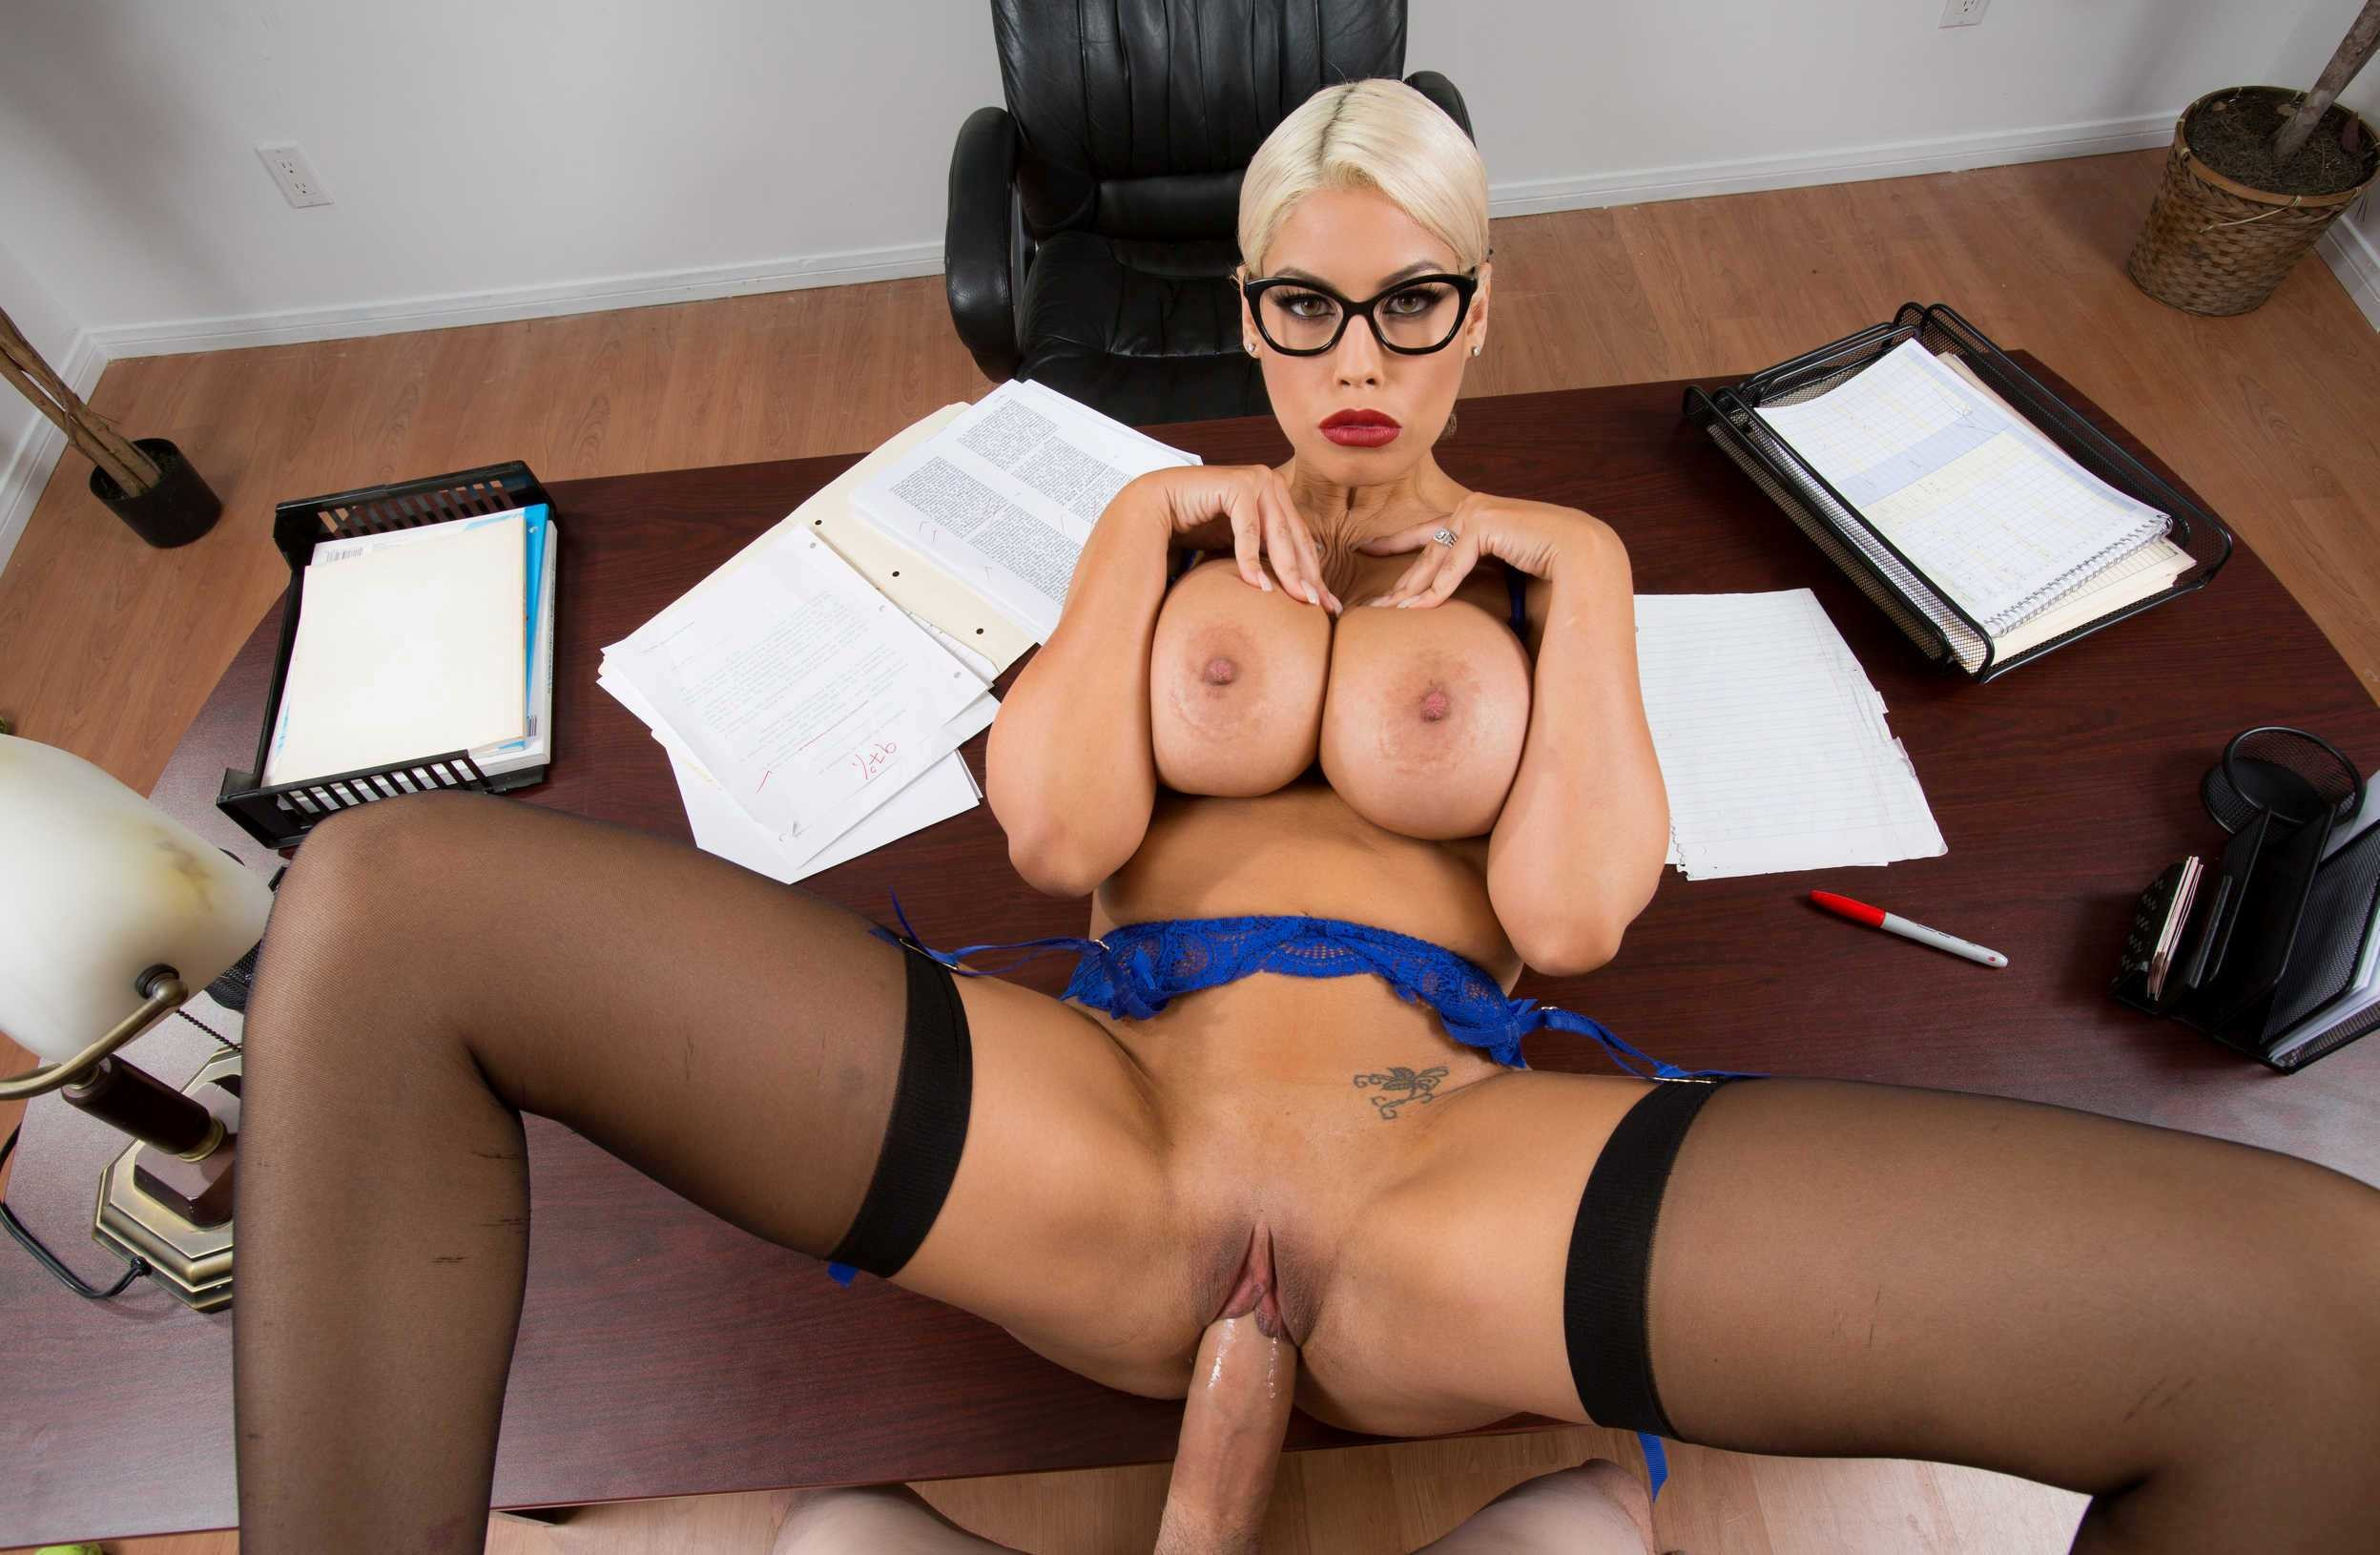 Stone my busty teacher naked women